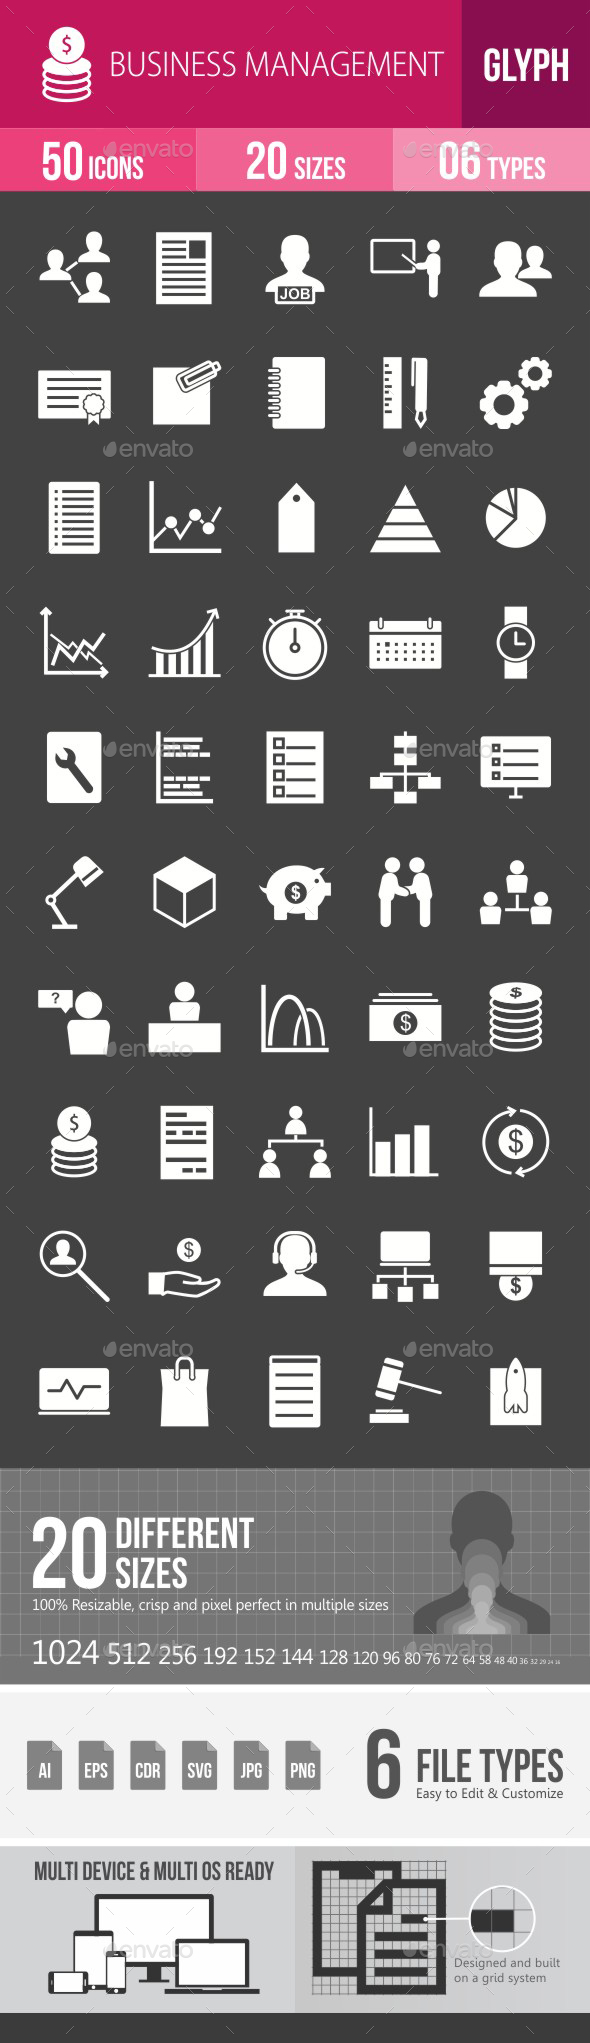 Business Management Glyph Inverted Icons - Icons